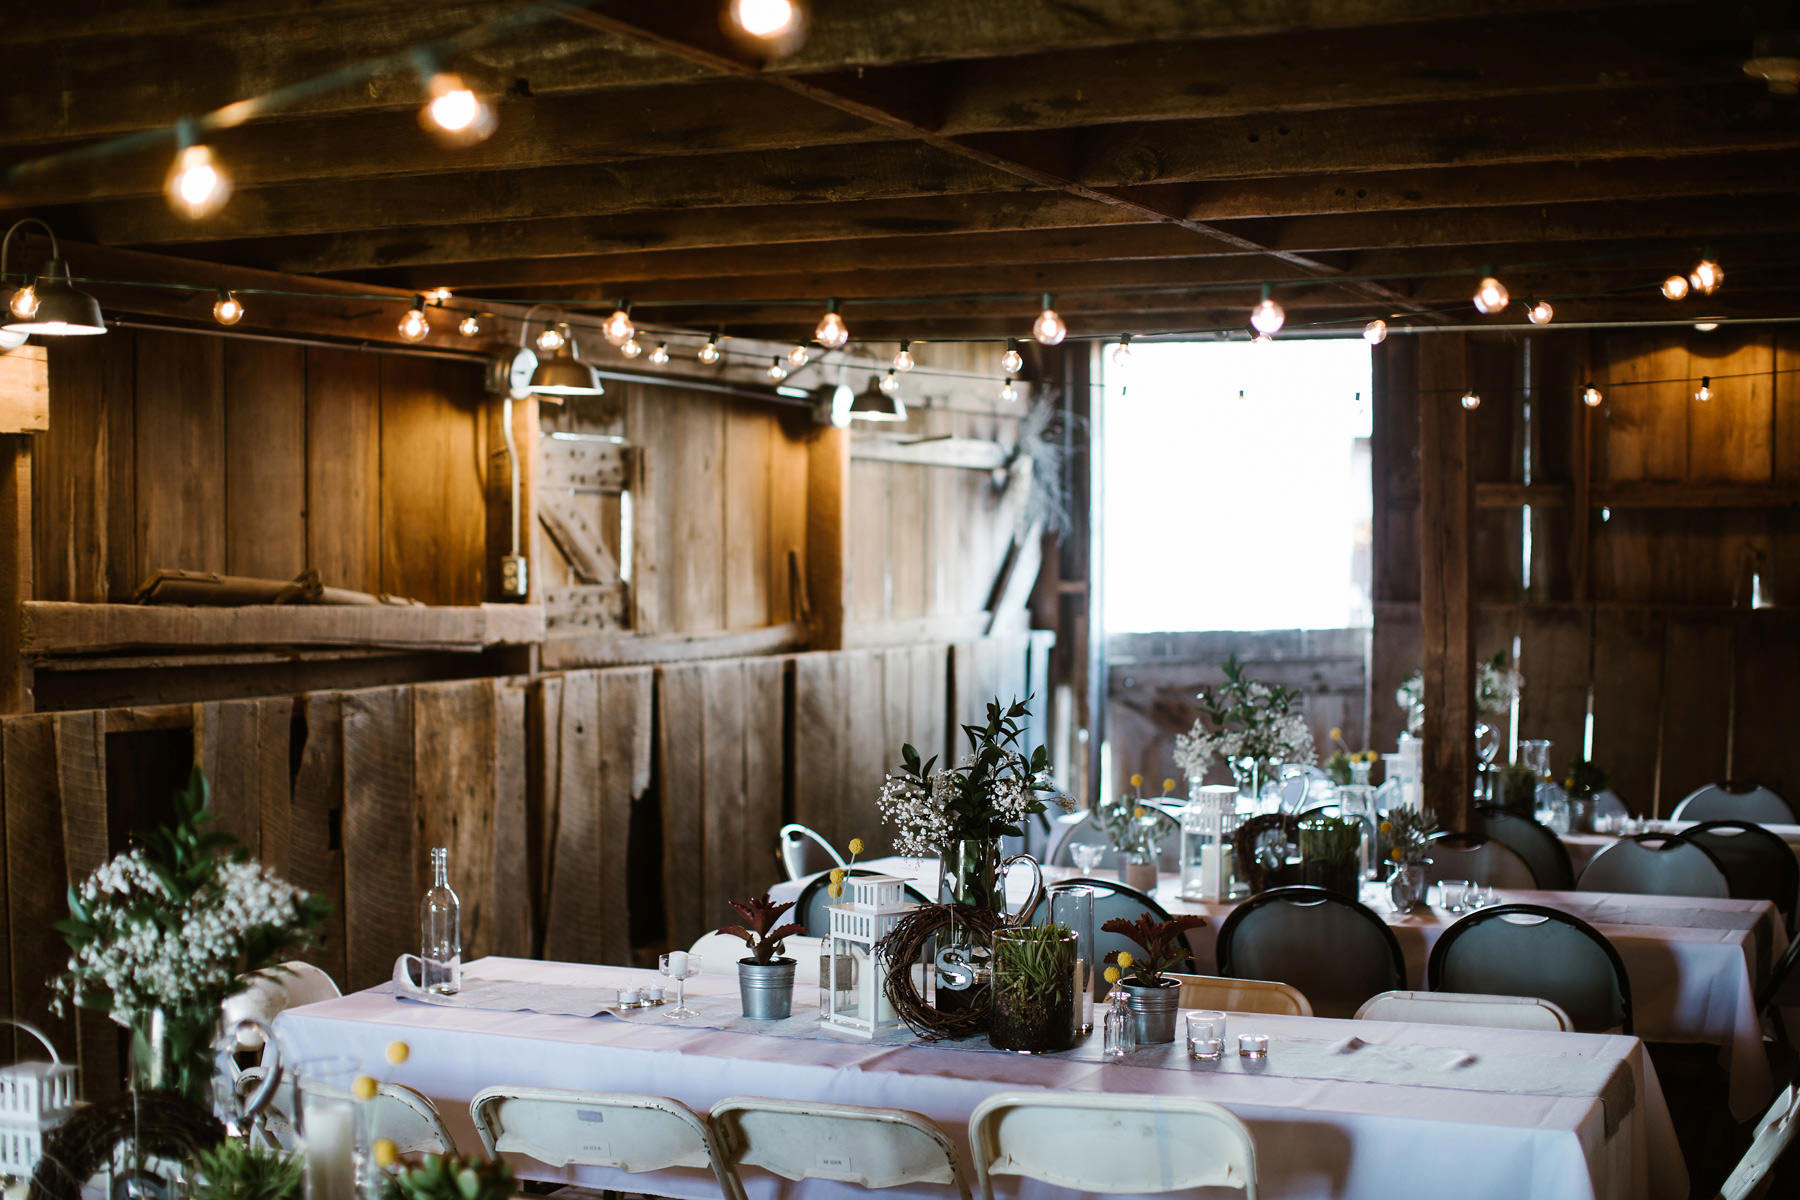 83_Alldredge Orchards Outdoor Wedding Kansas City, Missouri_Kindling Wedding Photography.JPG